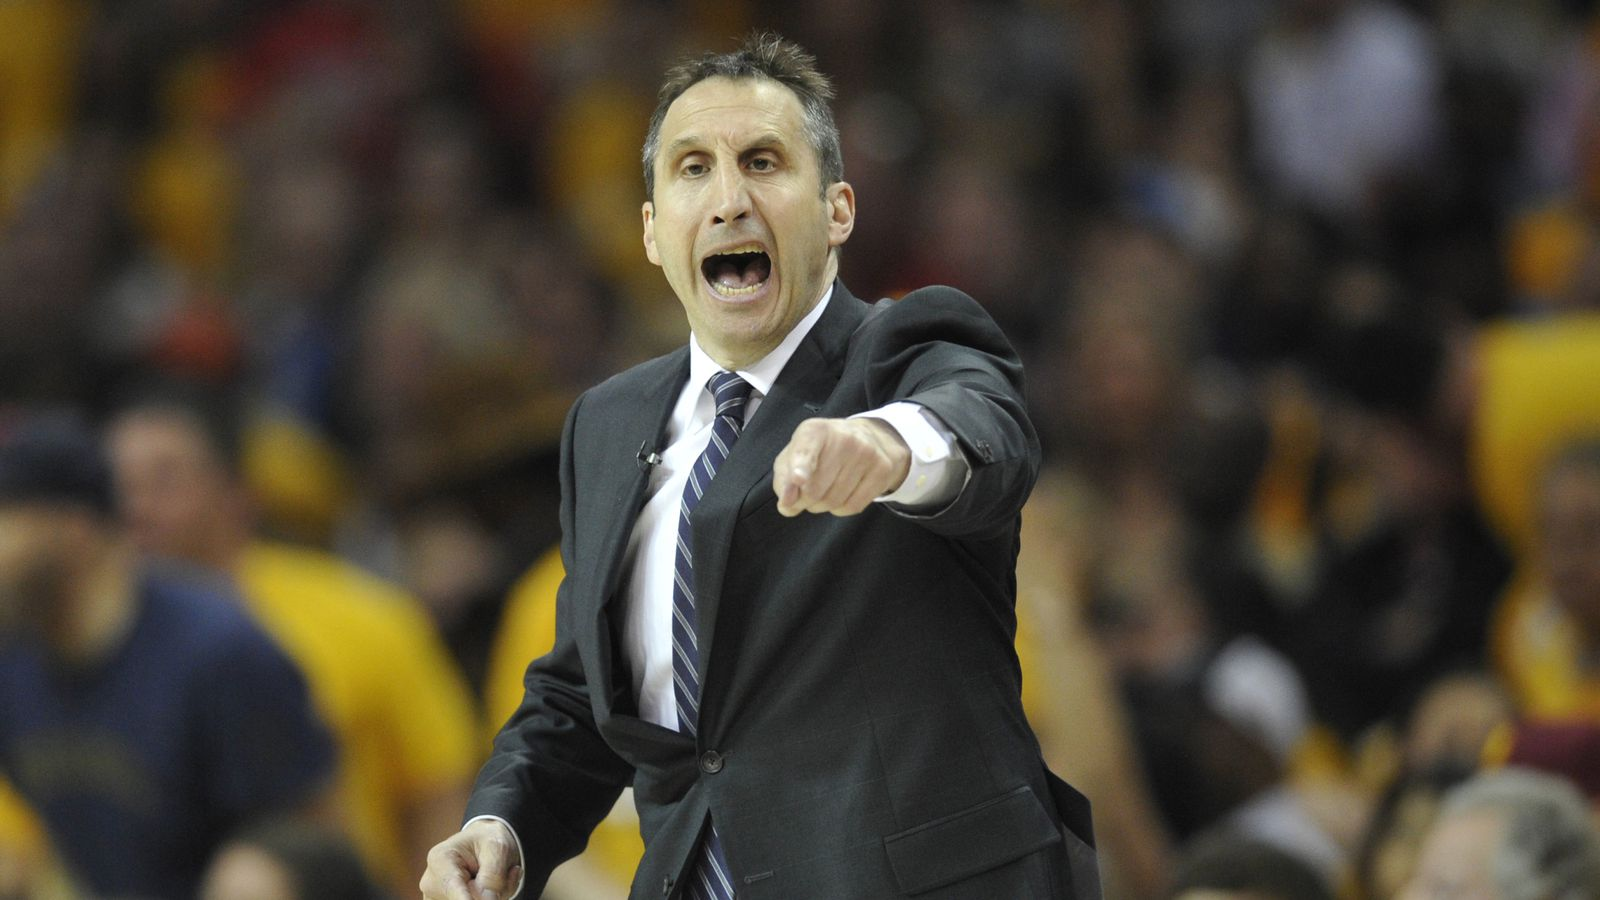 David Blatt tried to call a timeout when he had none left